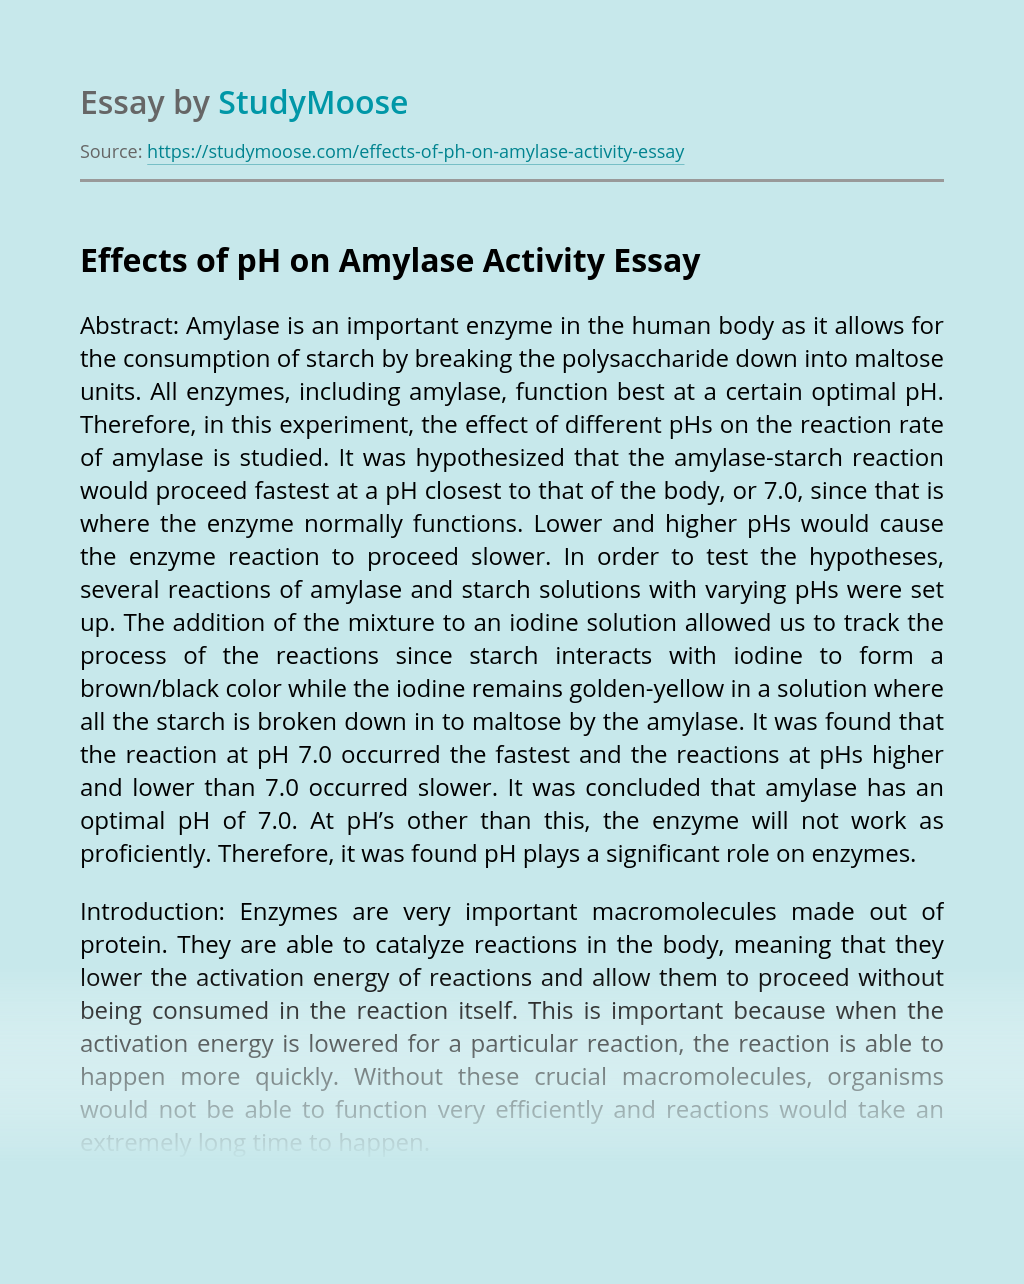 Effects of pH on Amylase Activity